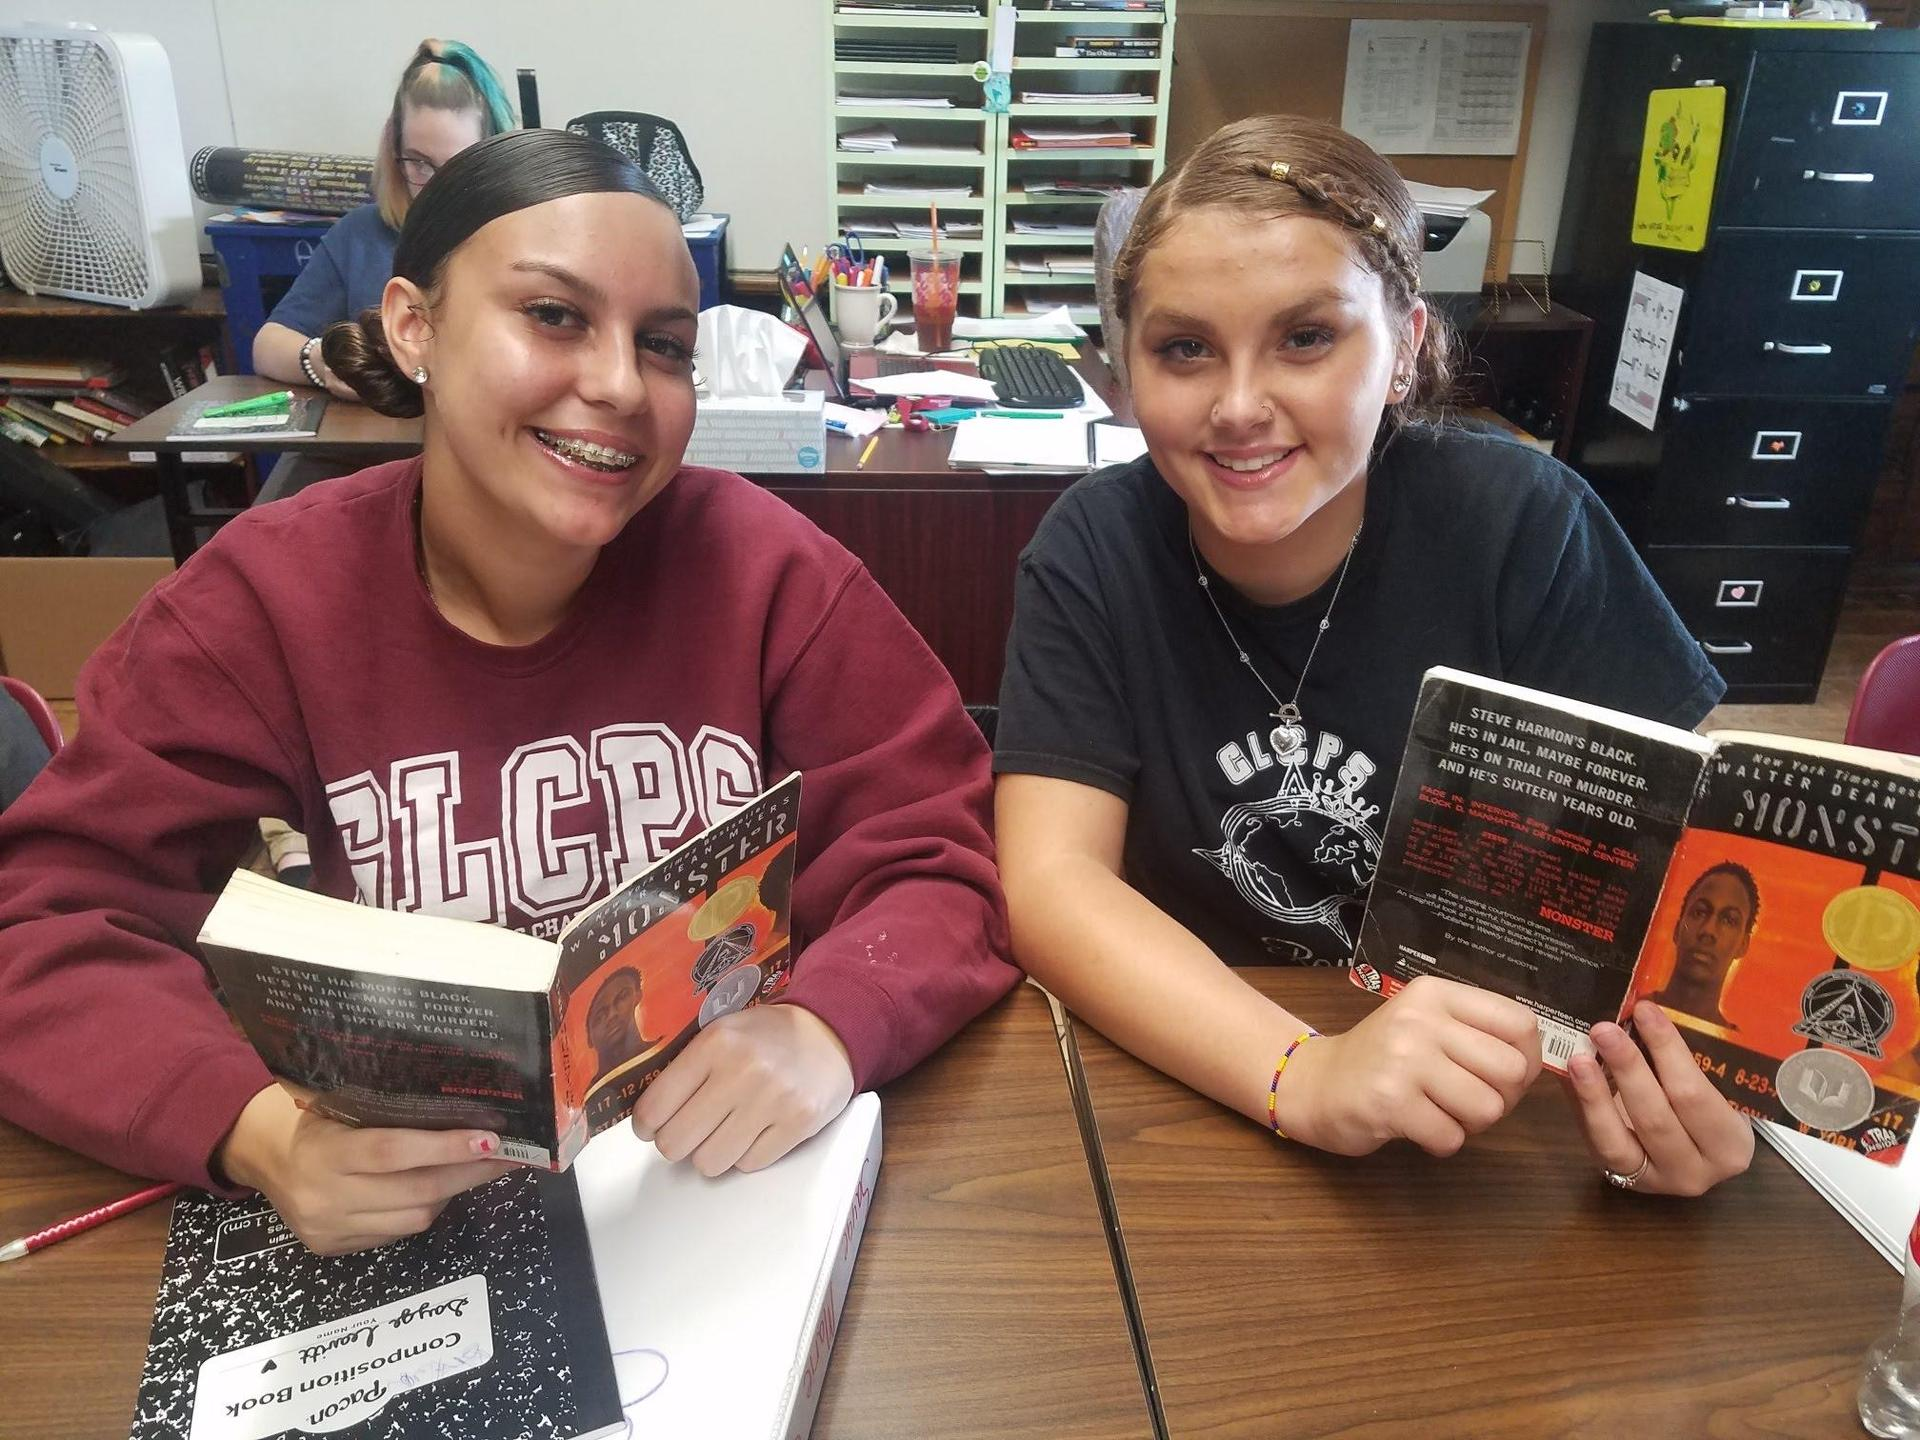 Two students reading and smiling.